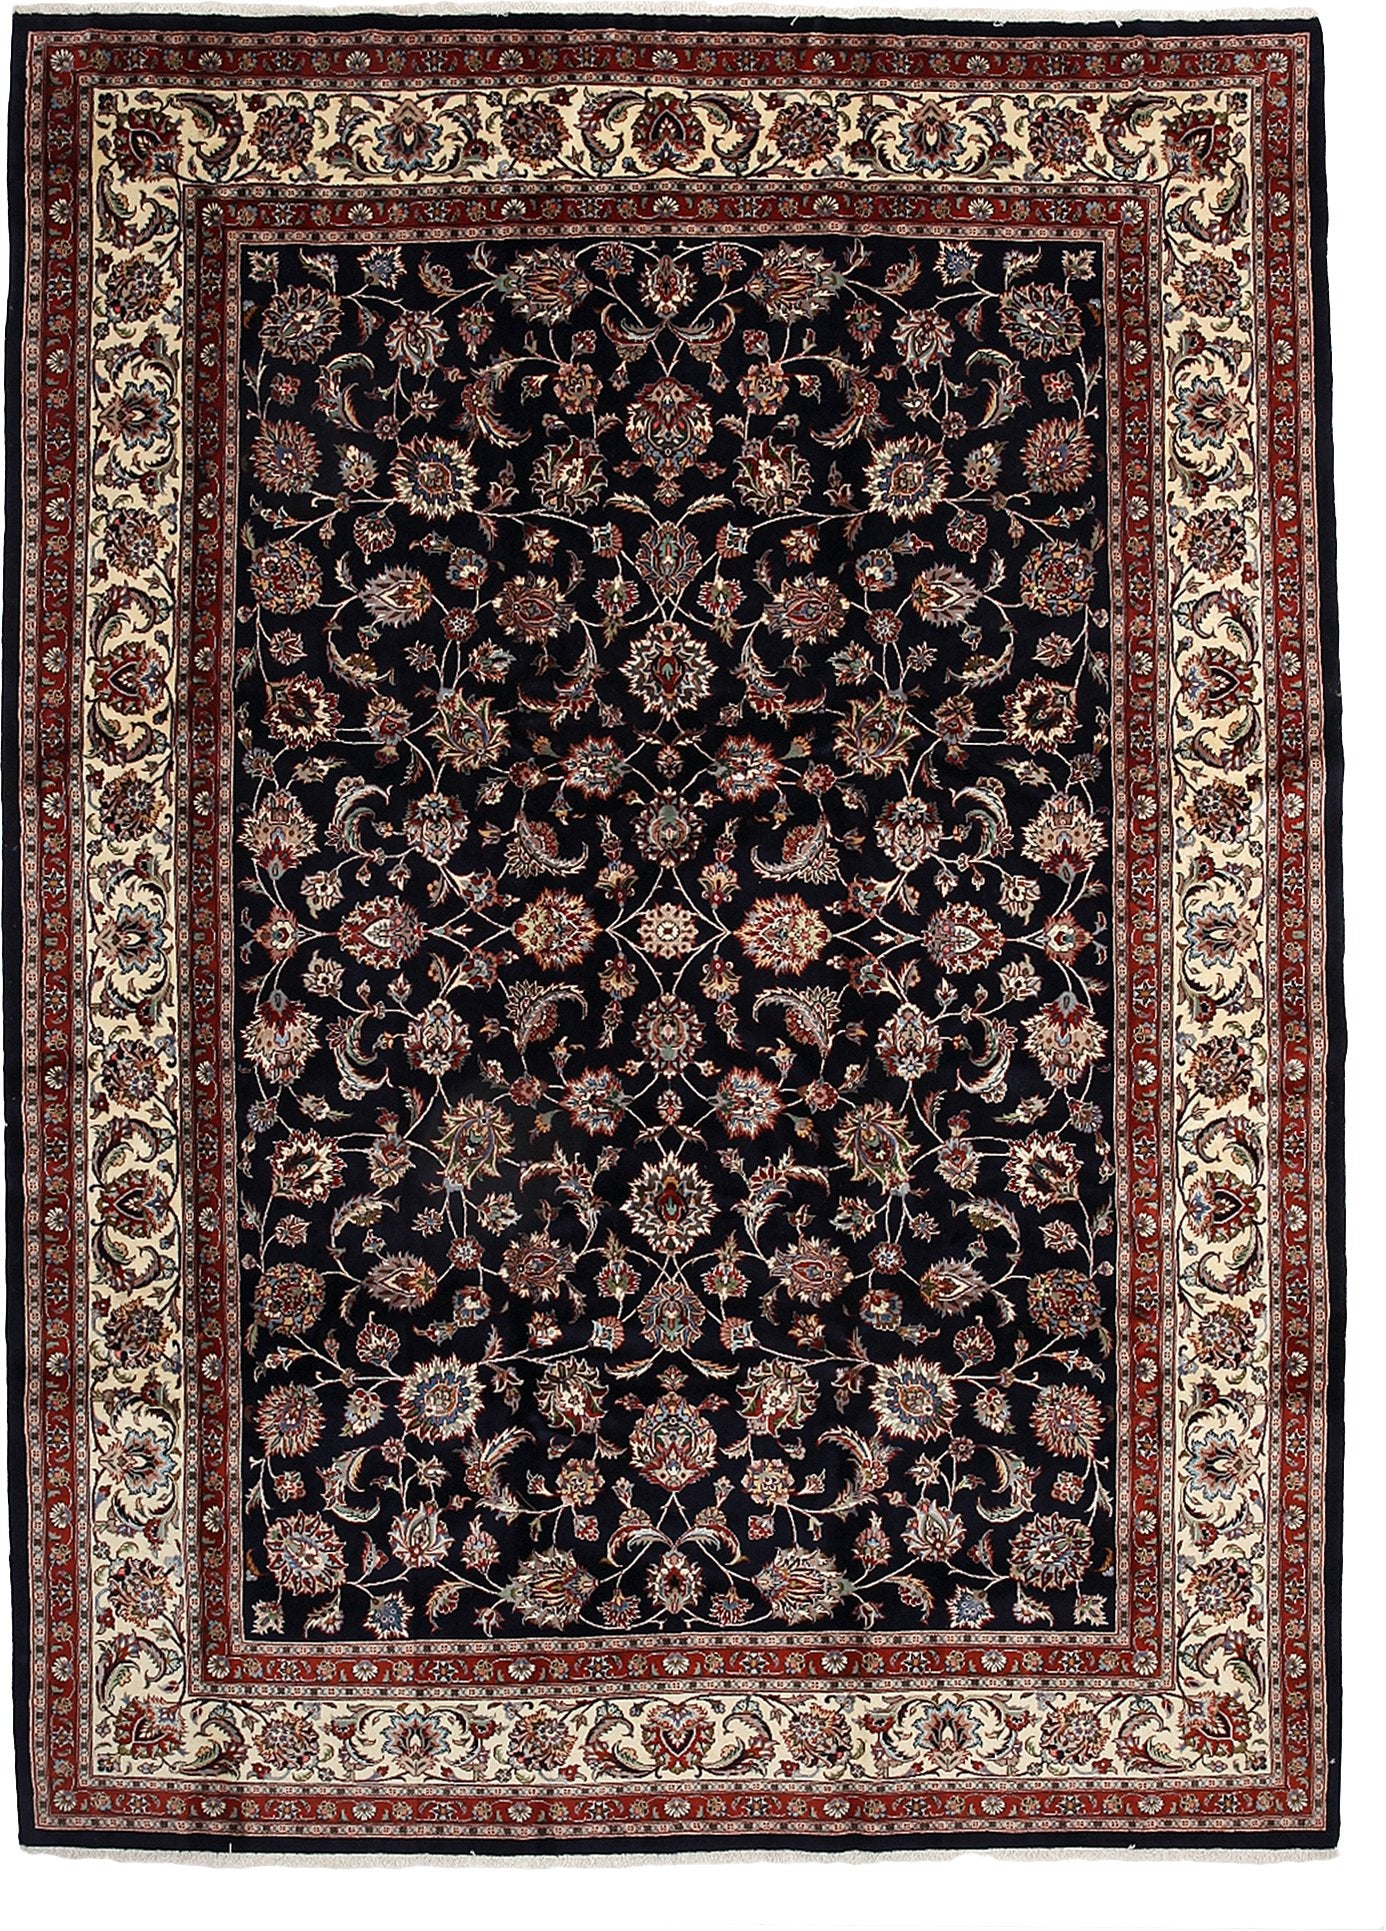 Persian Black Wool Area Rug 8 5 X 11 8 Lillian August